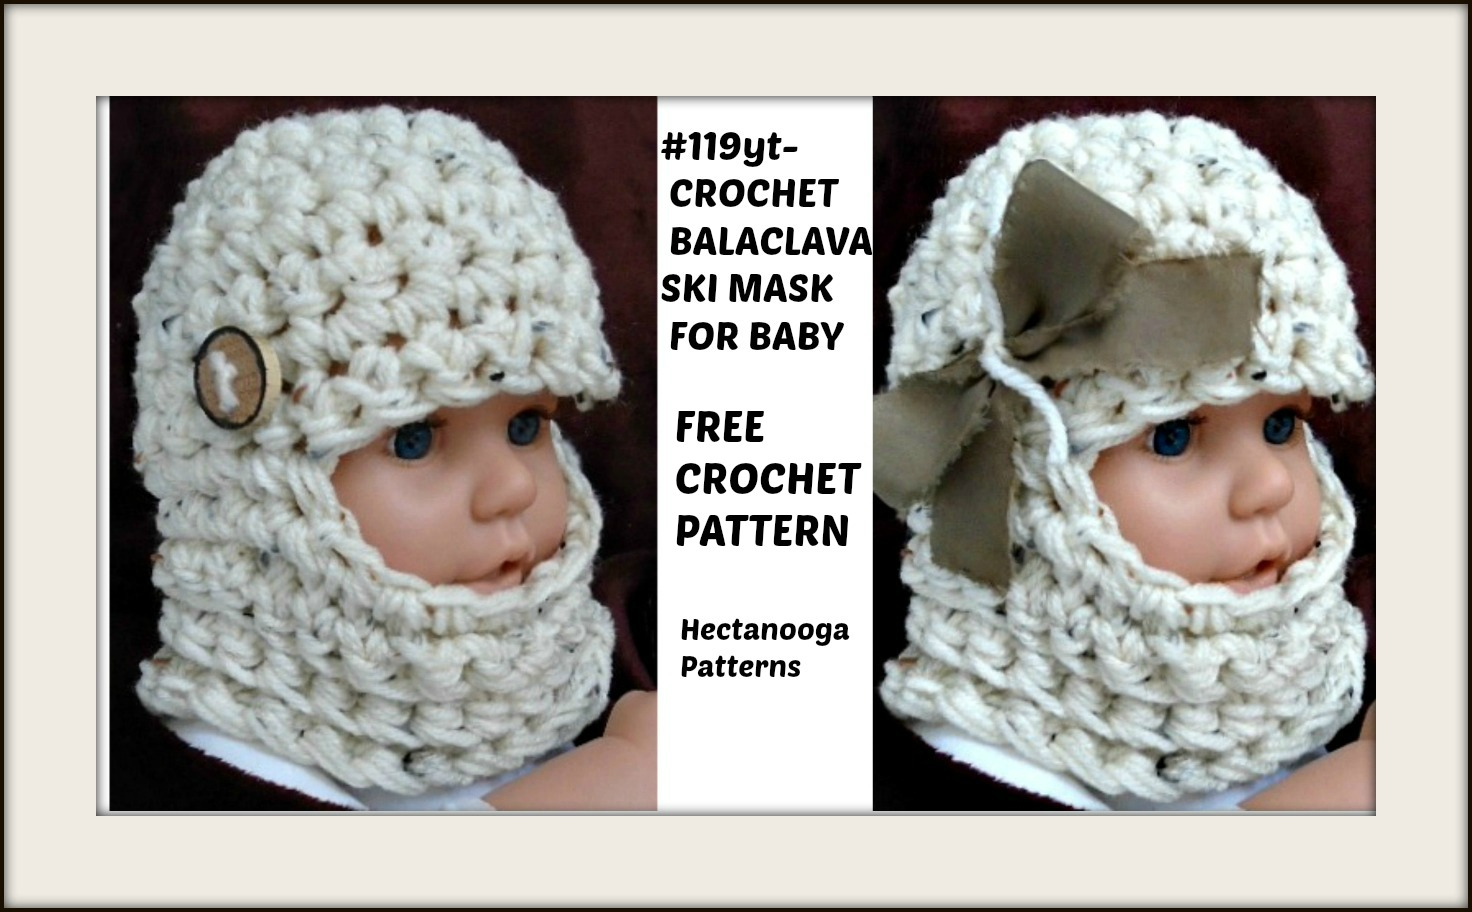 Knitting Pattern Balaclava Hectanooga Patterns Free Crochet Pattern Ba Balaclava Ski Mask Hat